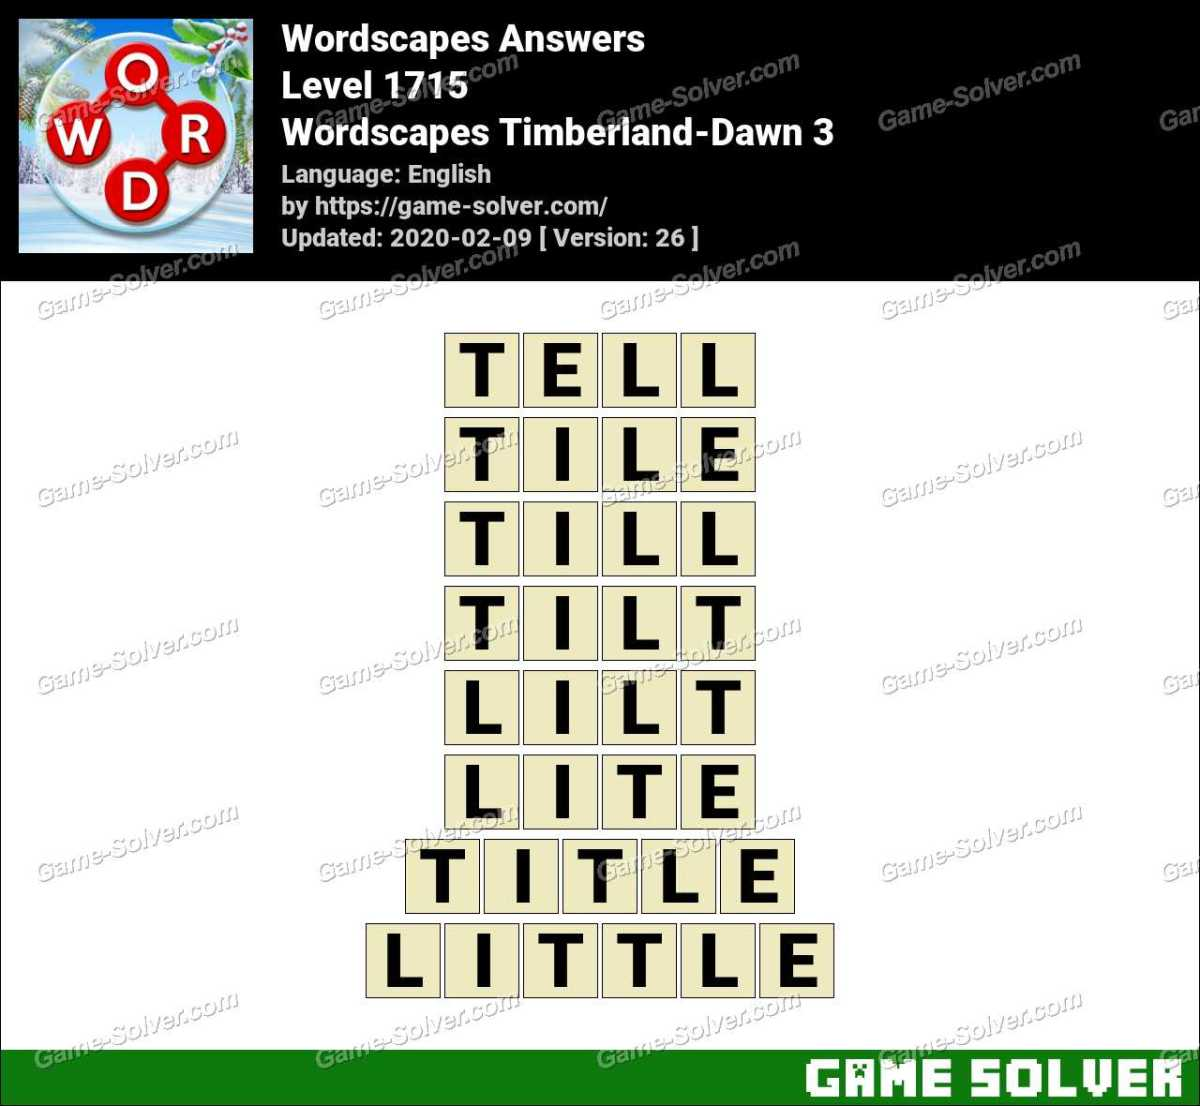 Wordscapes Timberland-Dawn 3 Answers